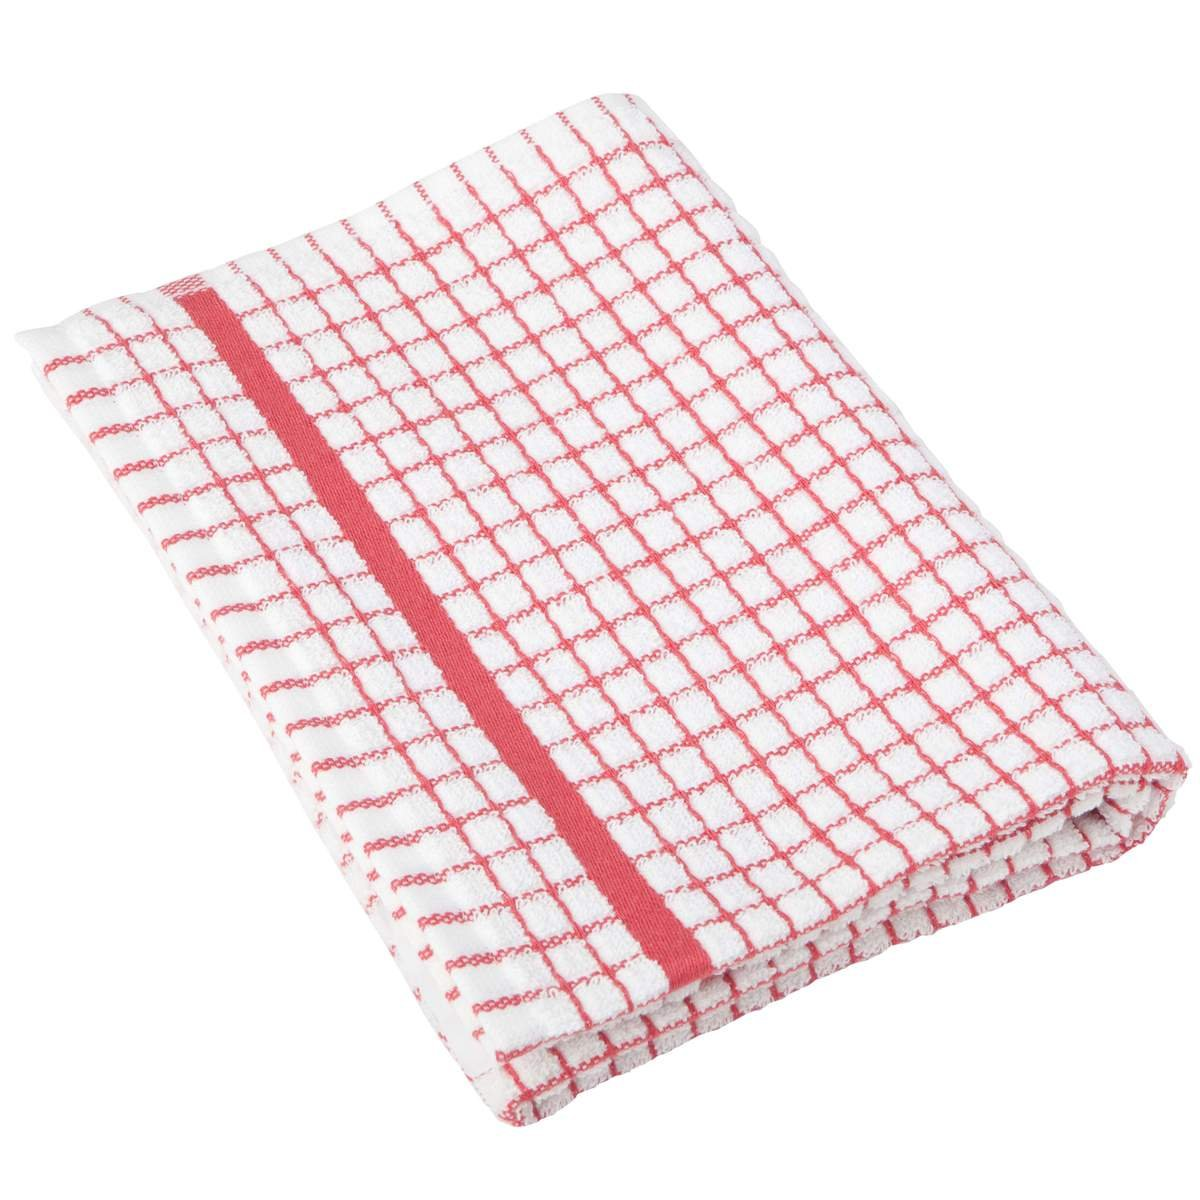 Lamont Poli-Dri Tea Towel / Dish Cloth, Red by eCoast Bargains